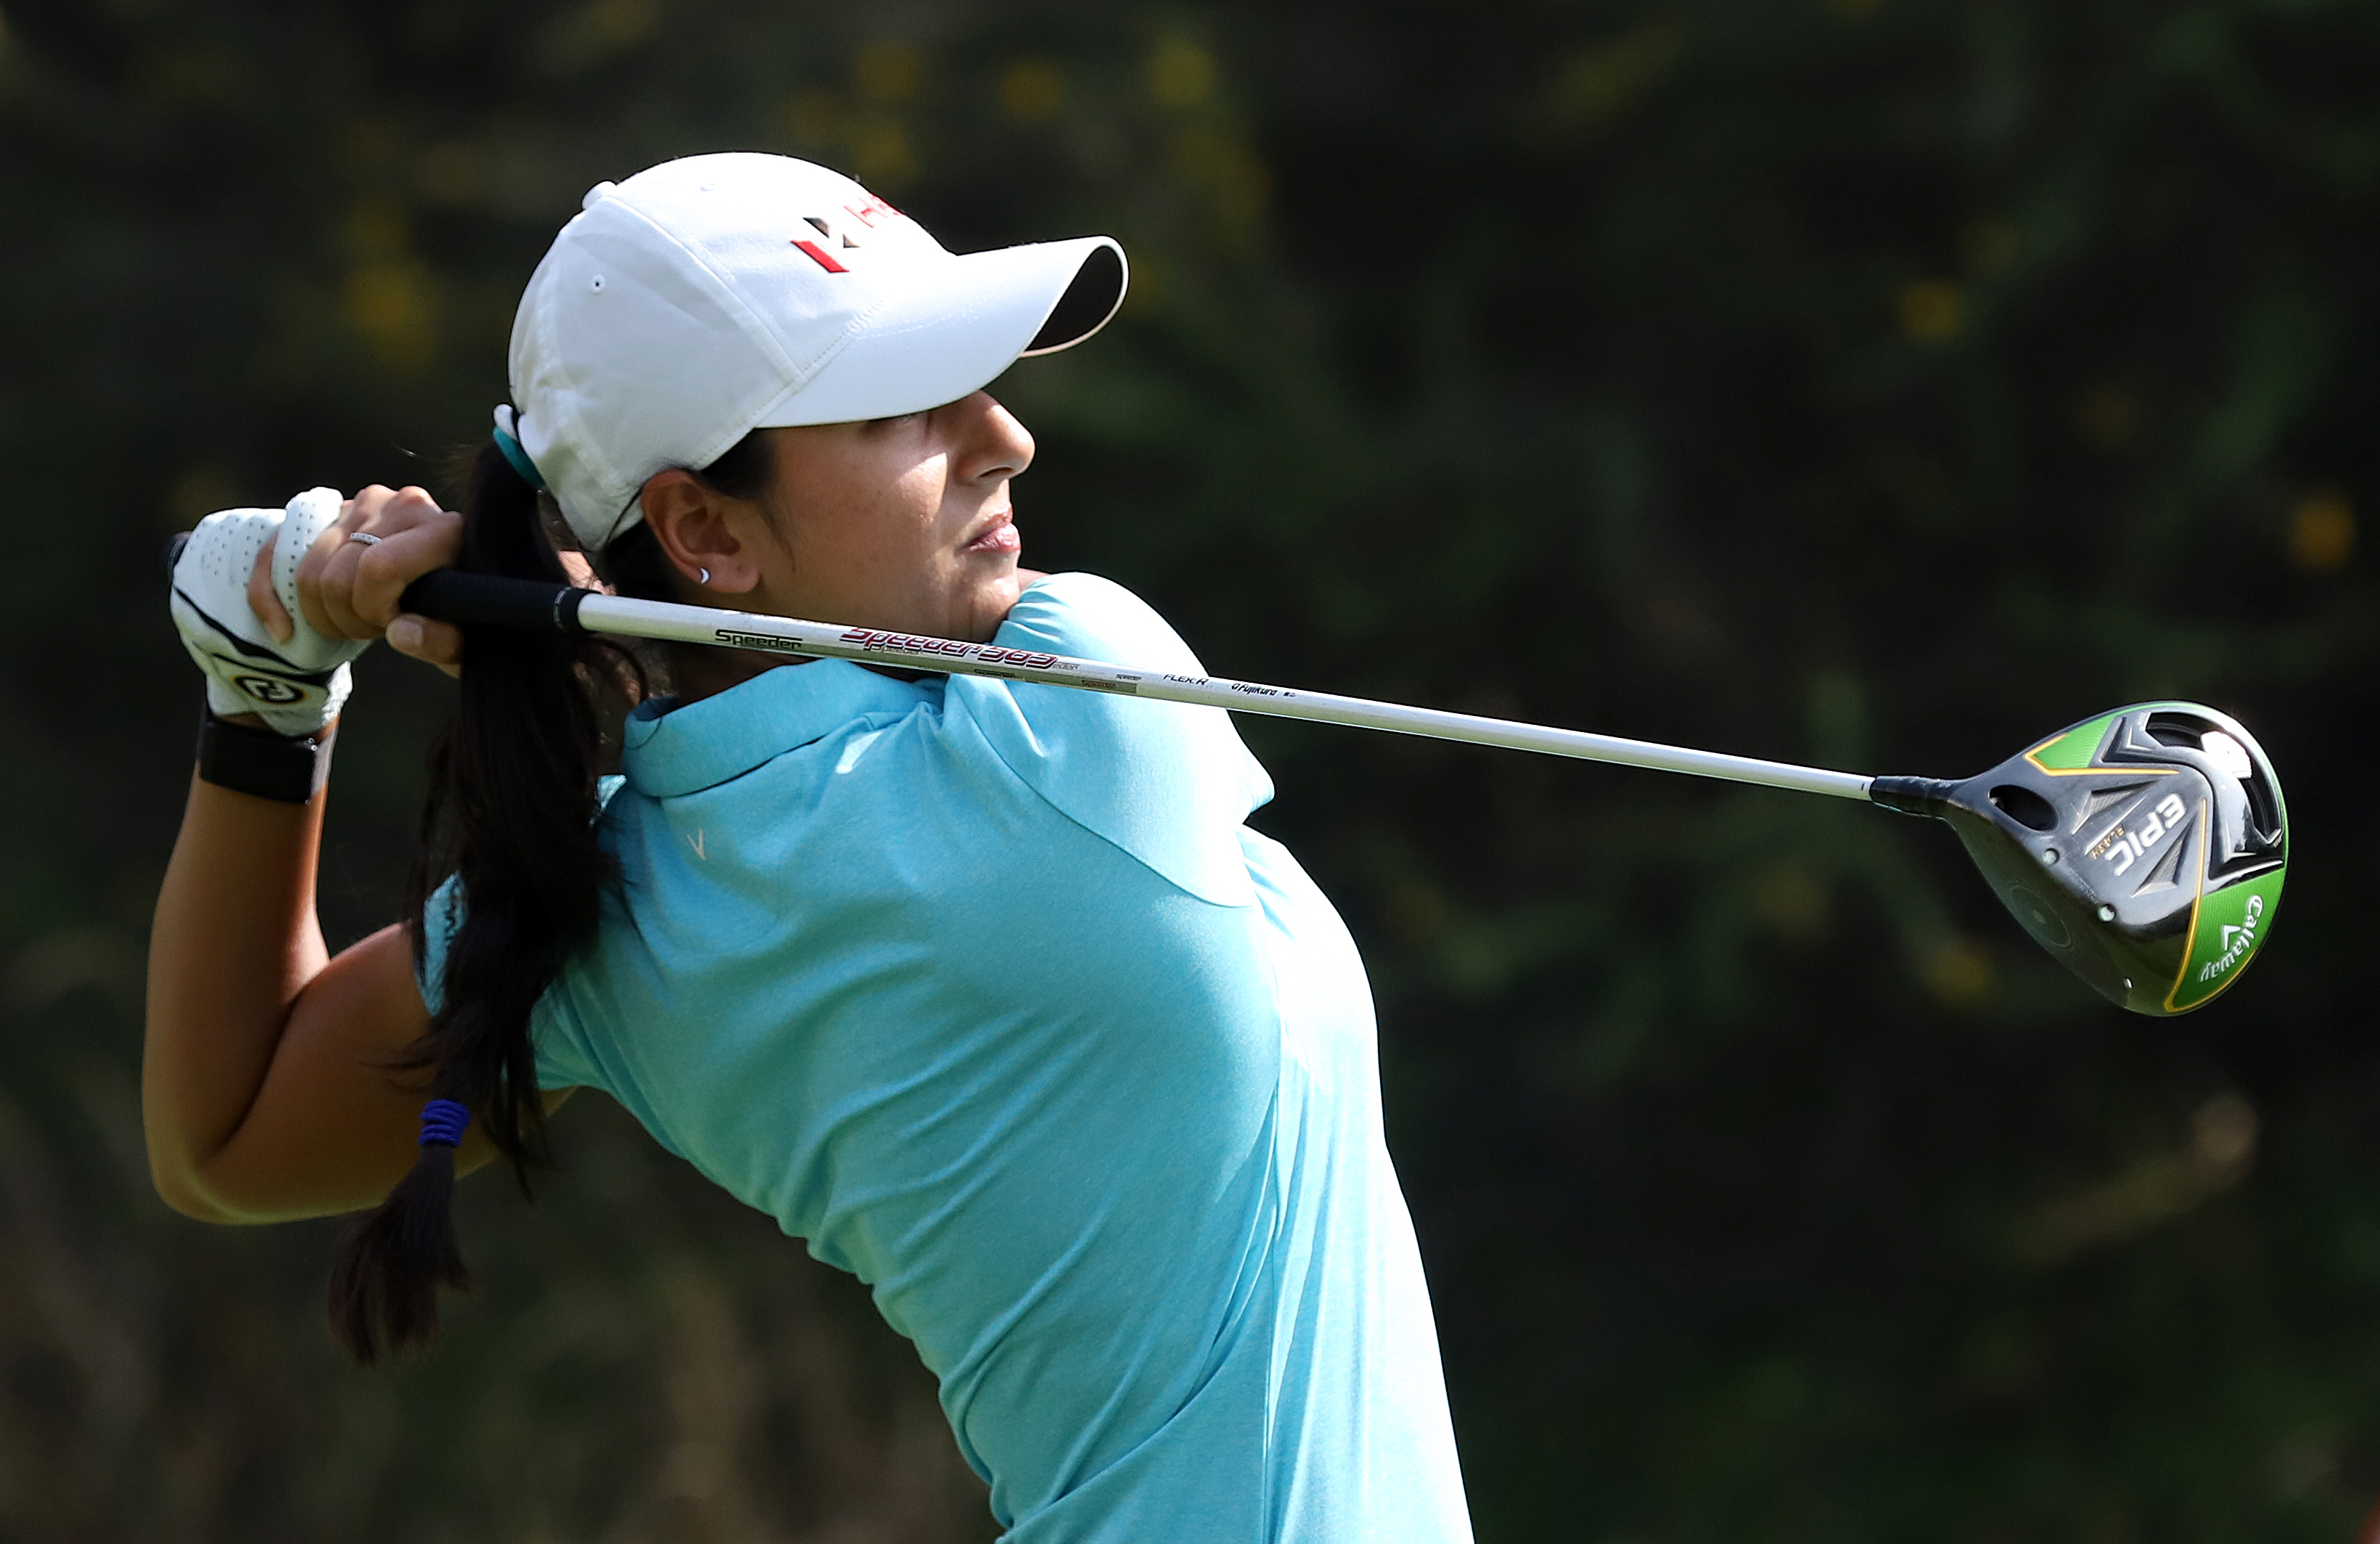 Tvesa wages strong battle to equal career-best finish at 6th in France